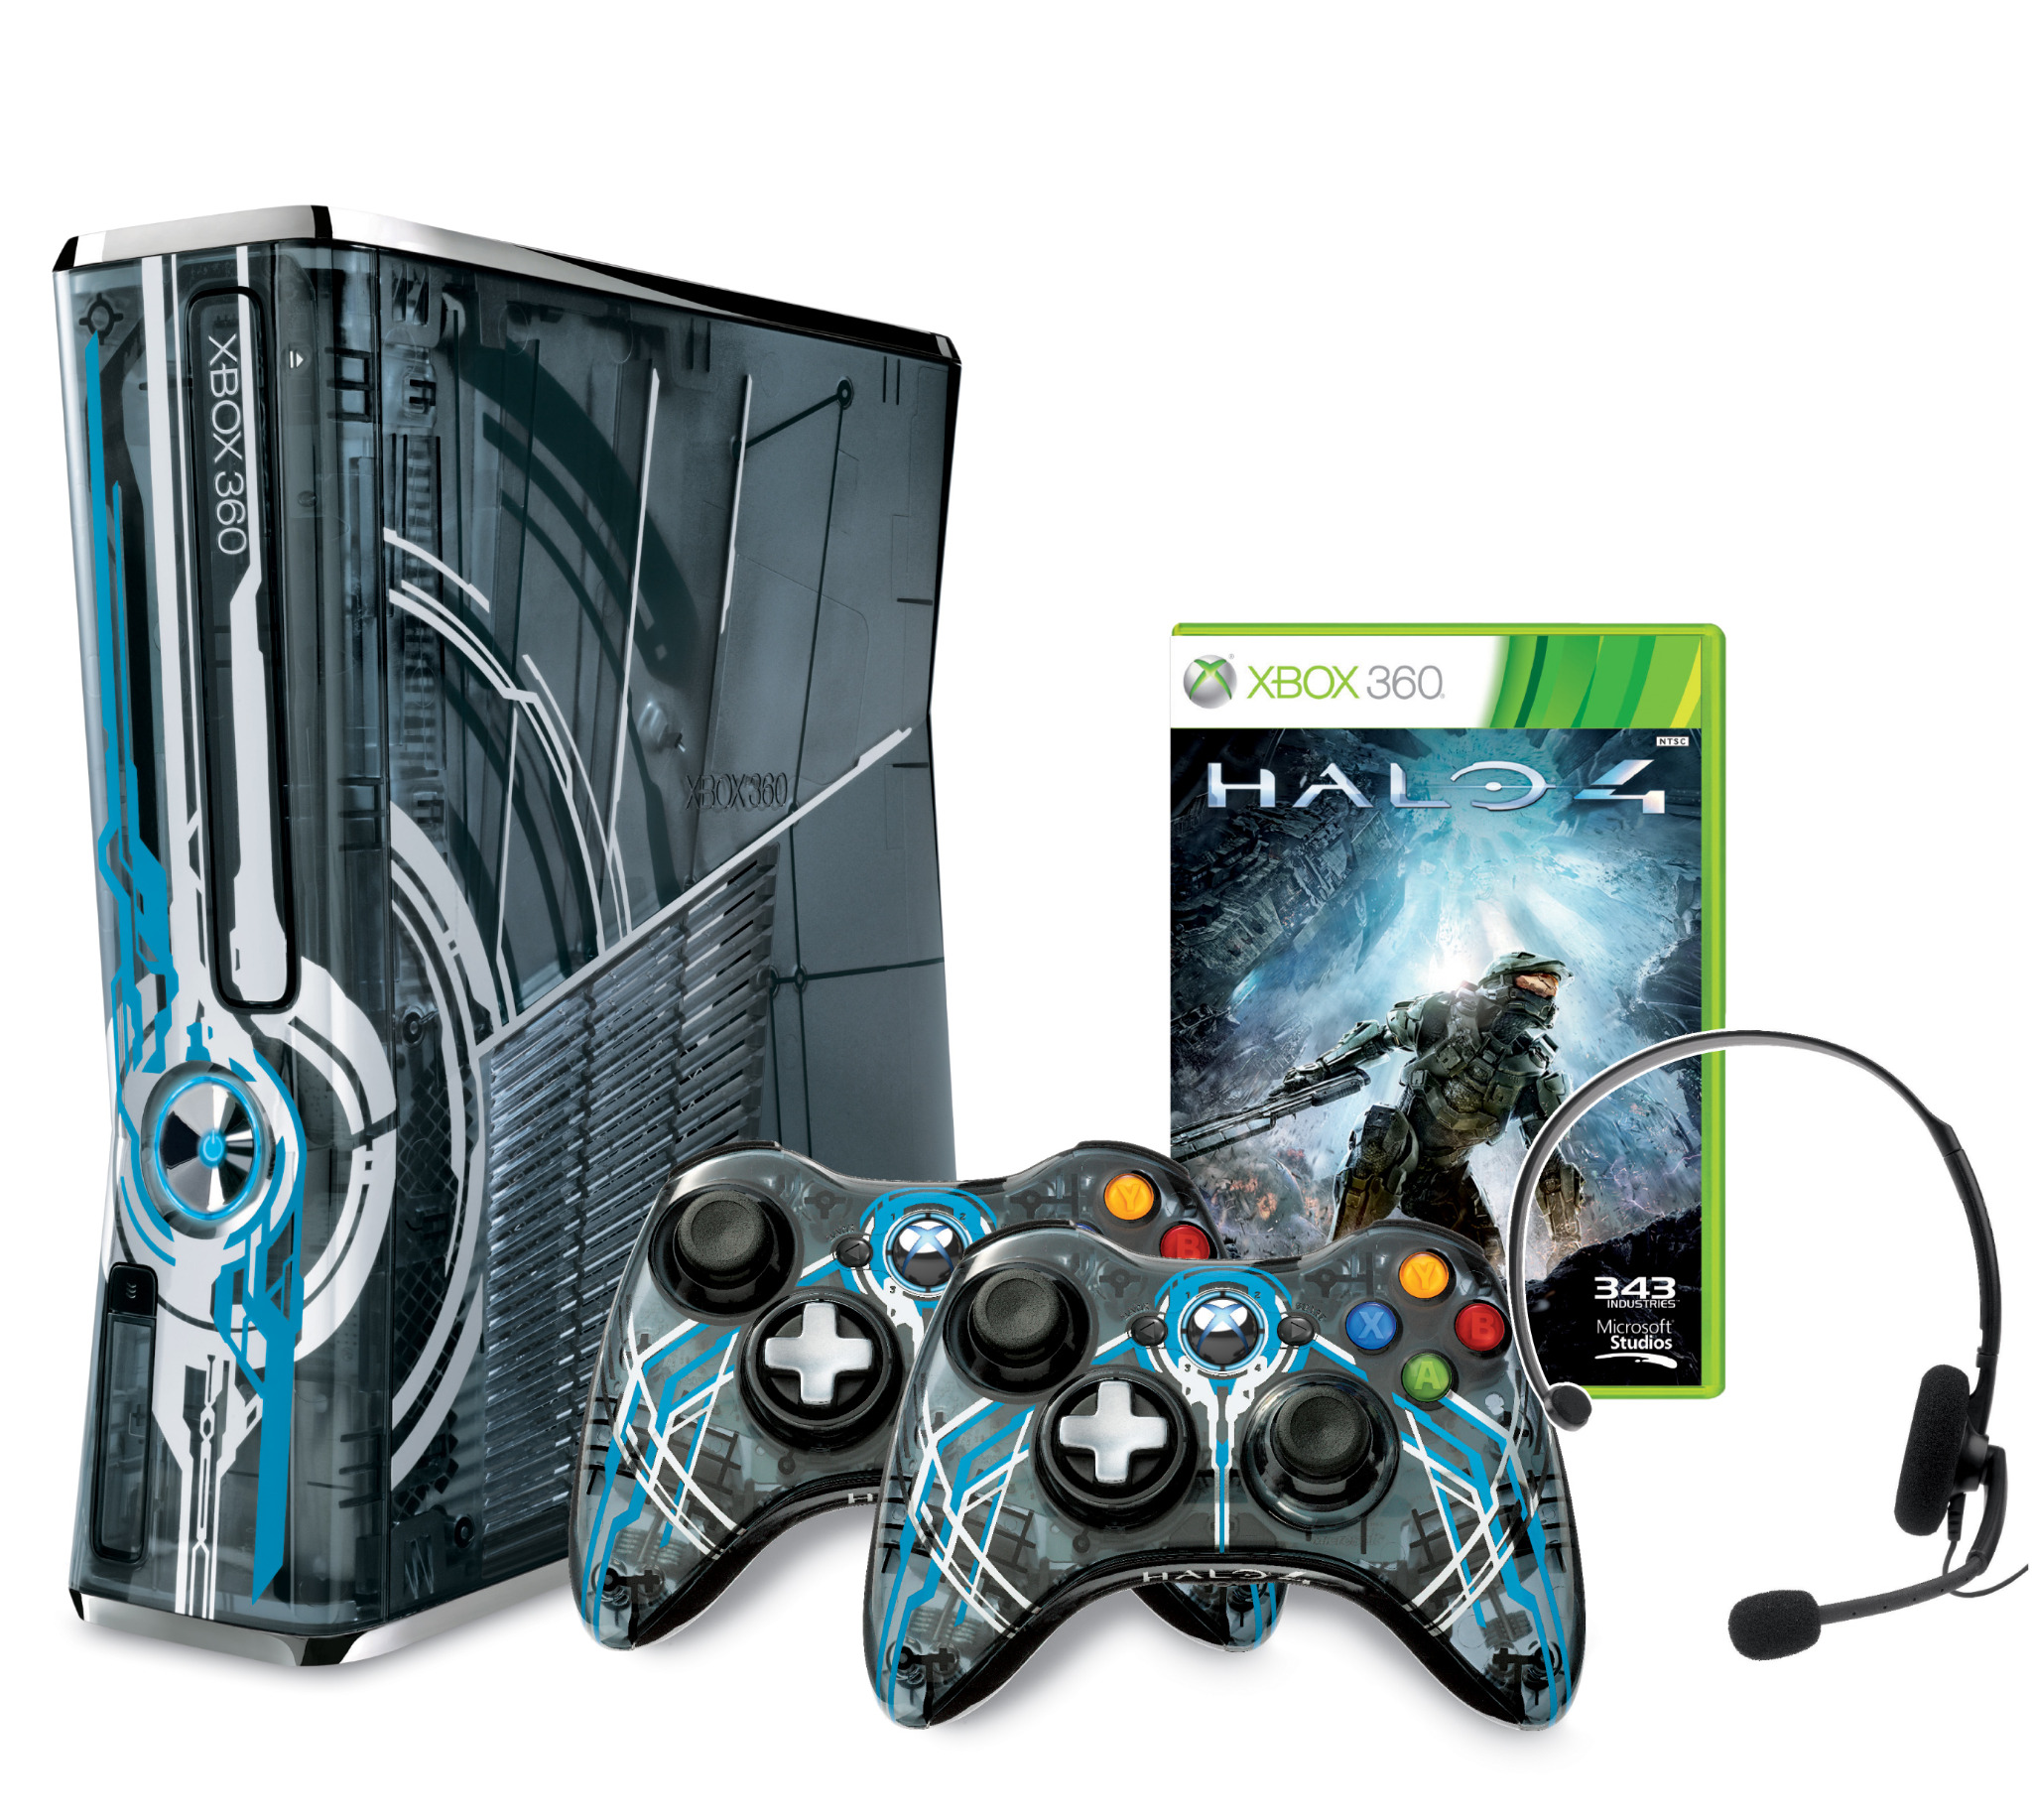 Announcing the @Xbox Limited Edition Halo 4 Console, with 320 GB hard drive, 2 controllers, and a copy of #Halo4 (RP)! http://t.co/xekDAexe